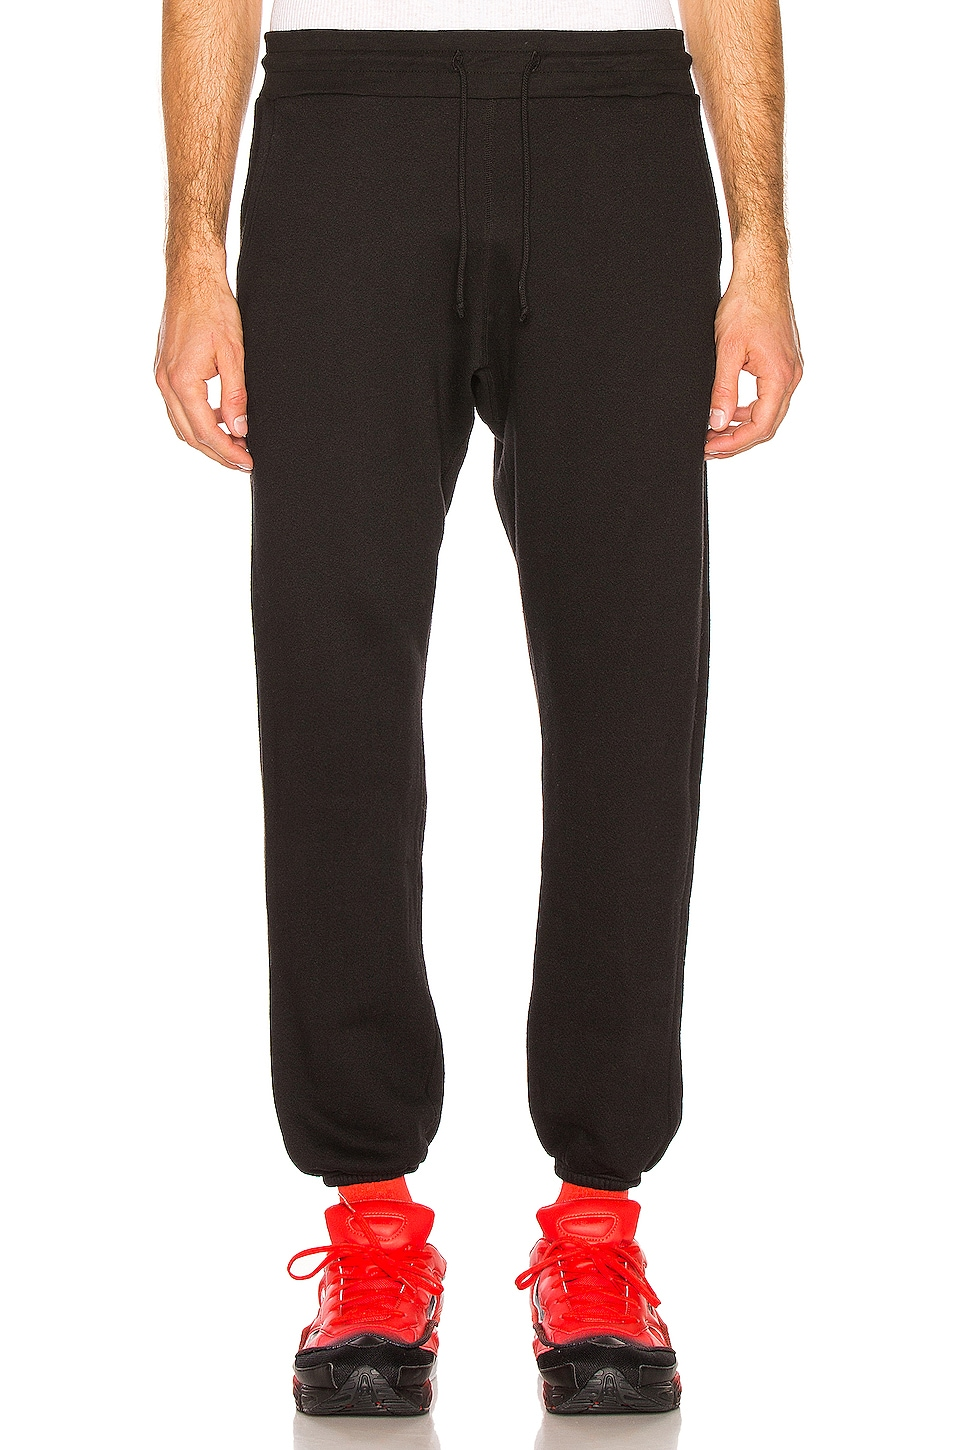 JOHN ELLIOTT Vintage Fleece Sweatpants in Vintage Black